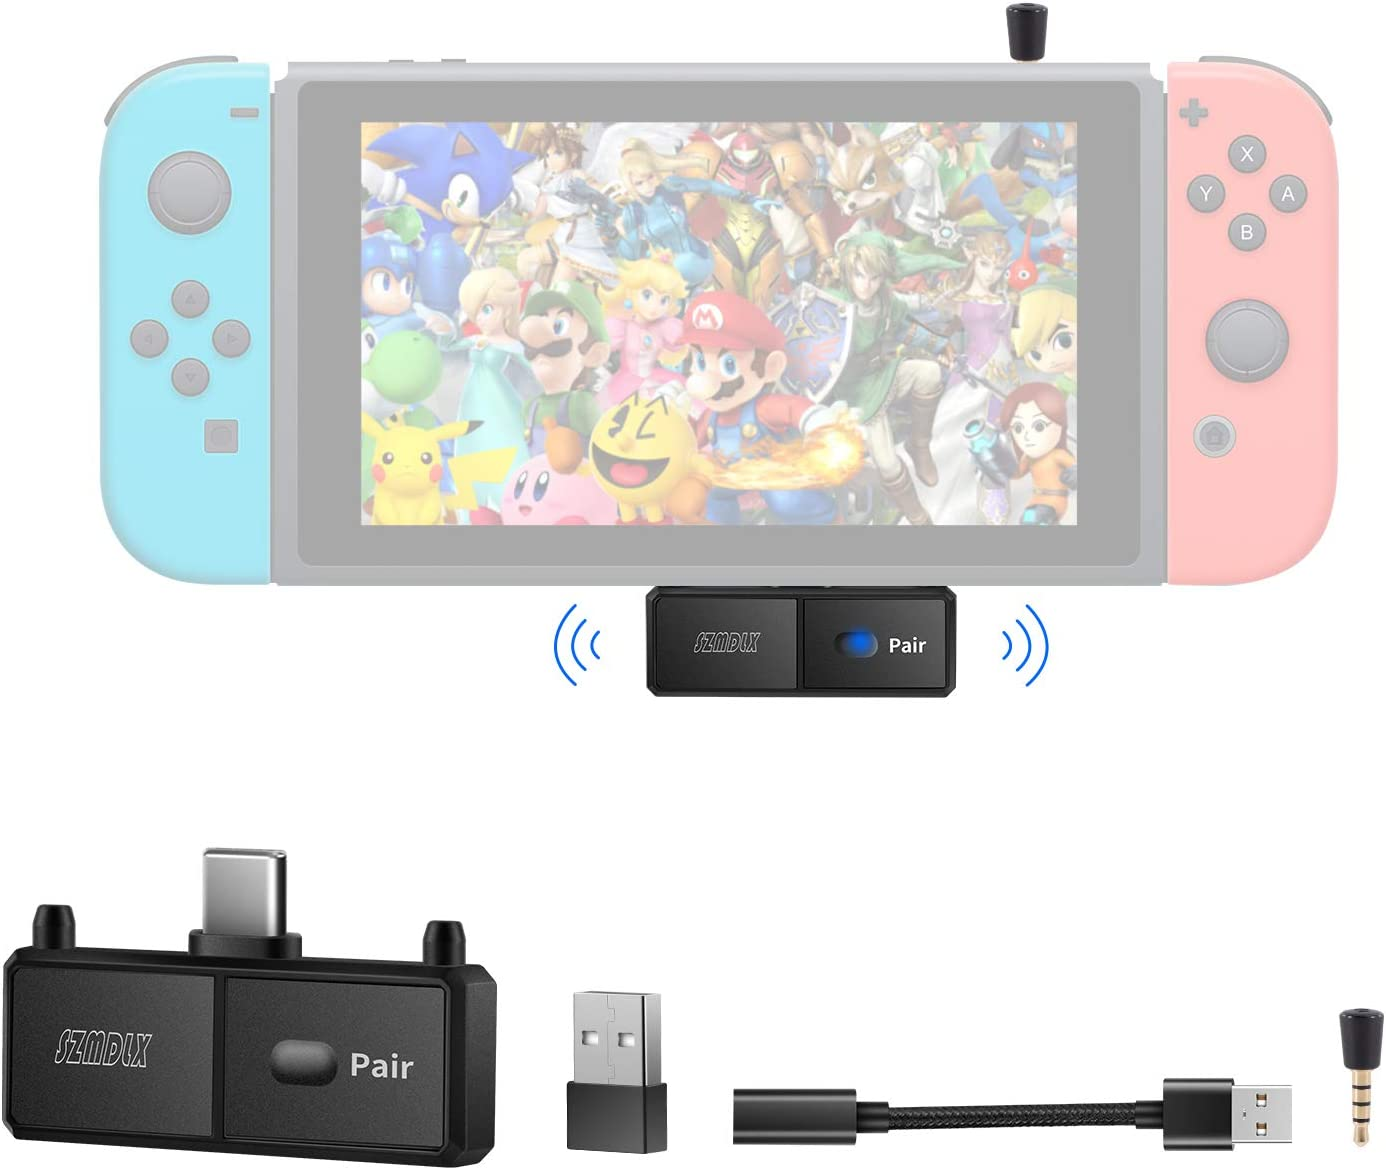 SZMDLX Transmisor de audio con adaptador Bluetooth 5.0 con USB C para Nintendo Switch, adaptador Bluetooth inalámbrico con micrófono para PS4 TV PC, par con auriculares Bluetooth, altavoces AirPods